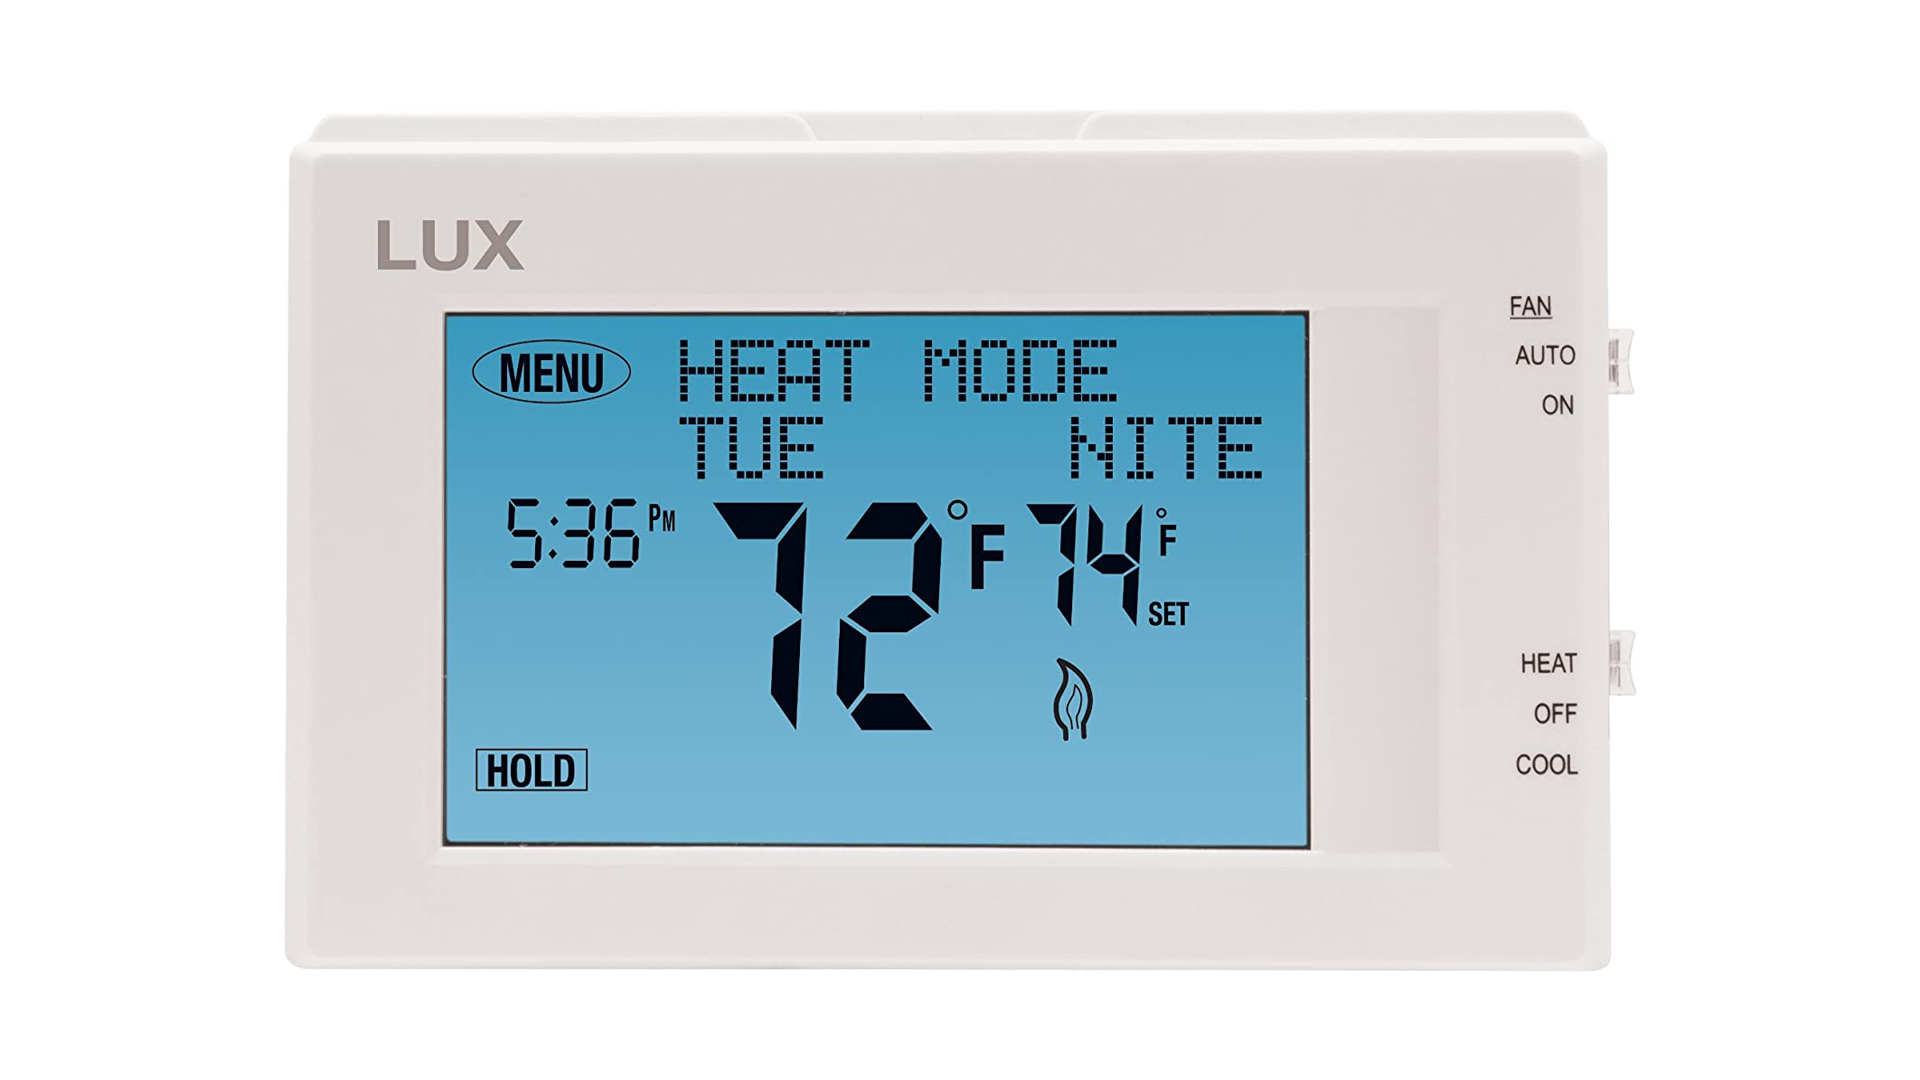 A photo of the Lux 7-day touchscreen thermostat.